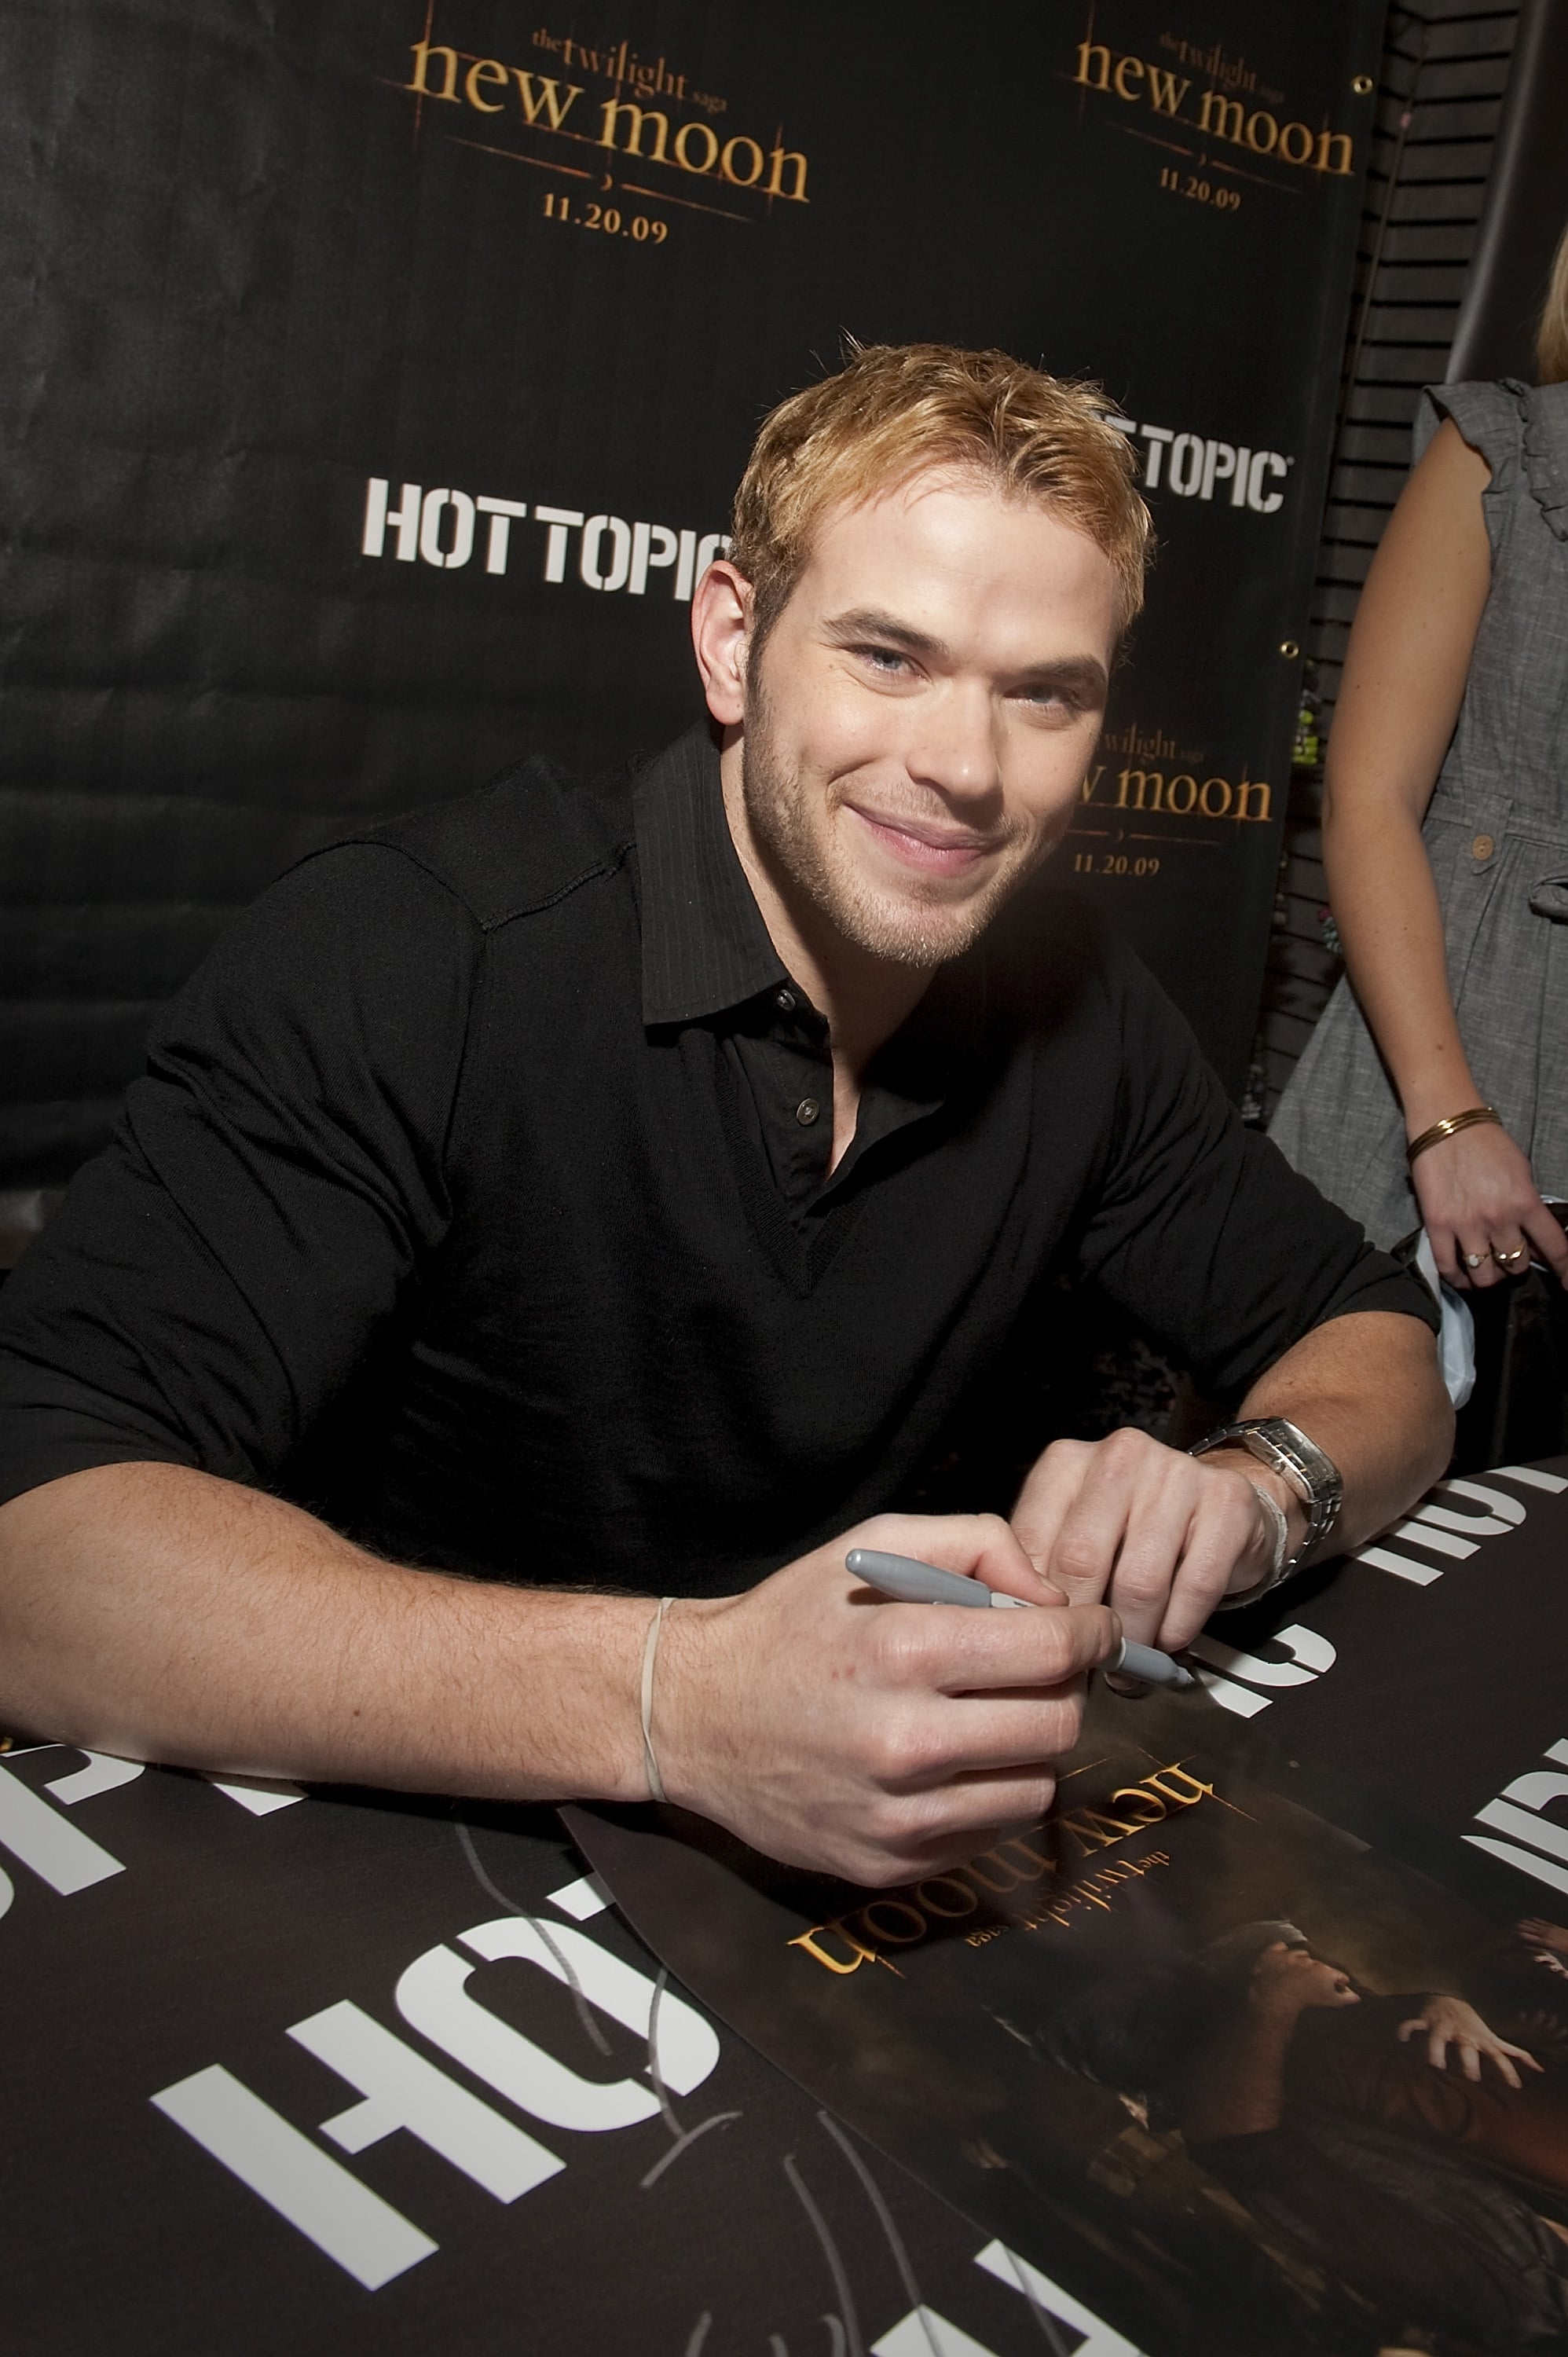 Photos Of Kellan Lutz Promoting New Moon At A Boston Mall